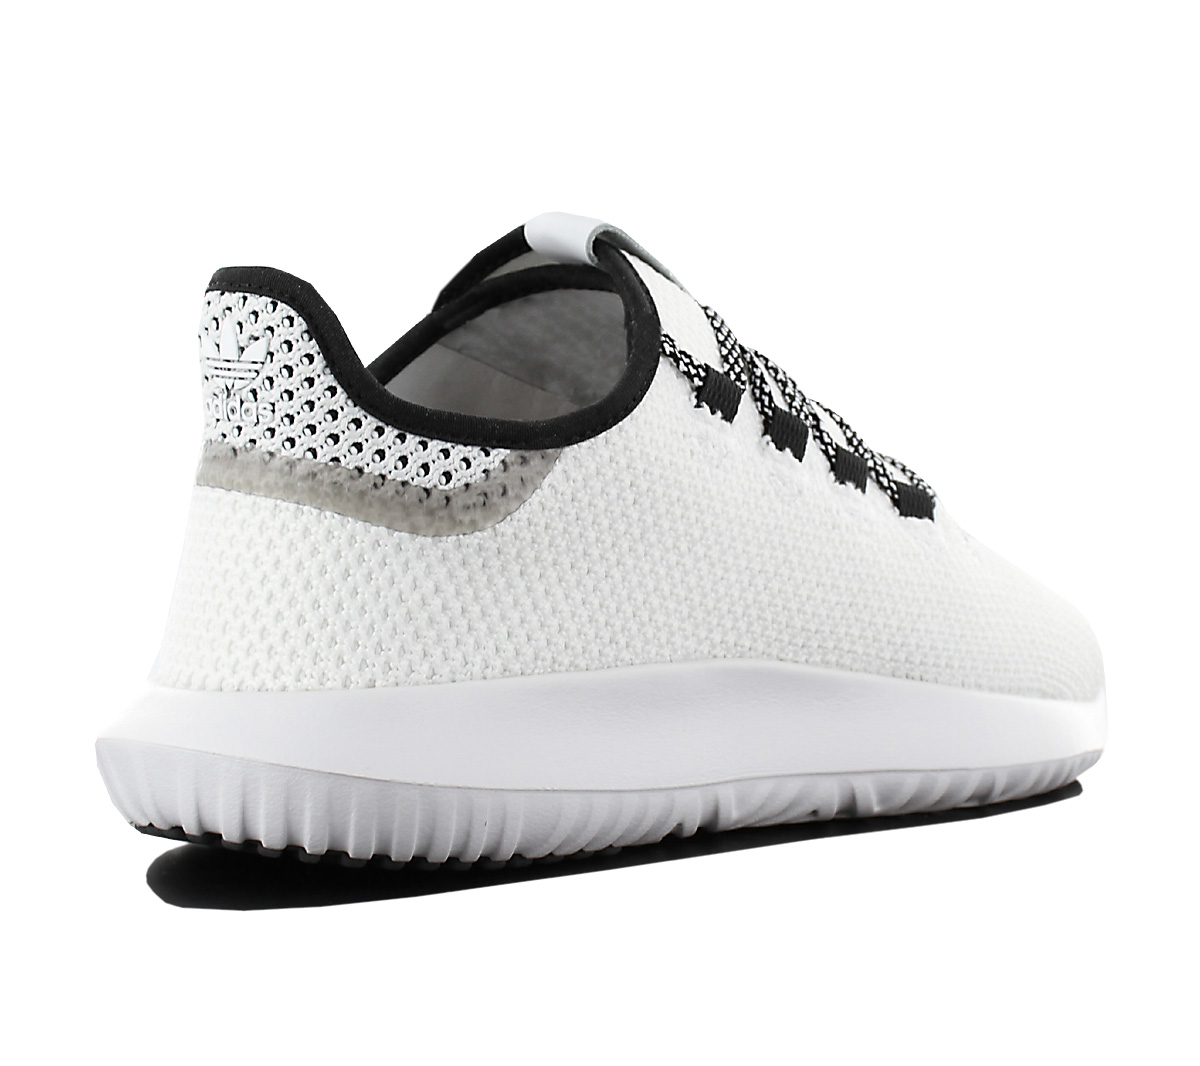 new arrivals b9f7f 178d8 adidas Tubular Shadow CK CQ0929